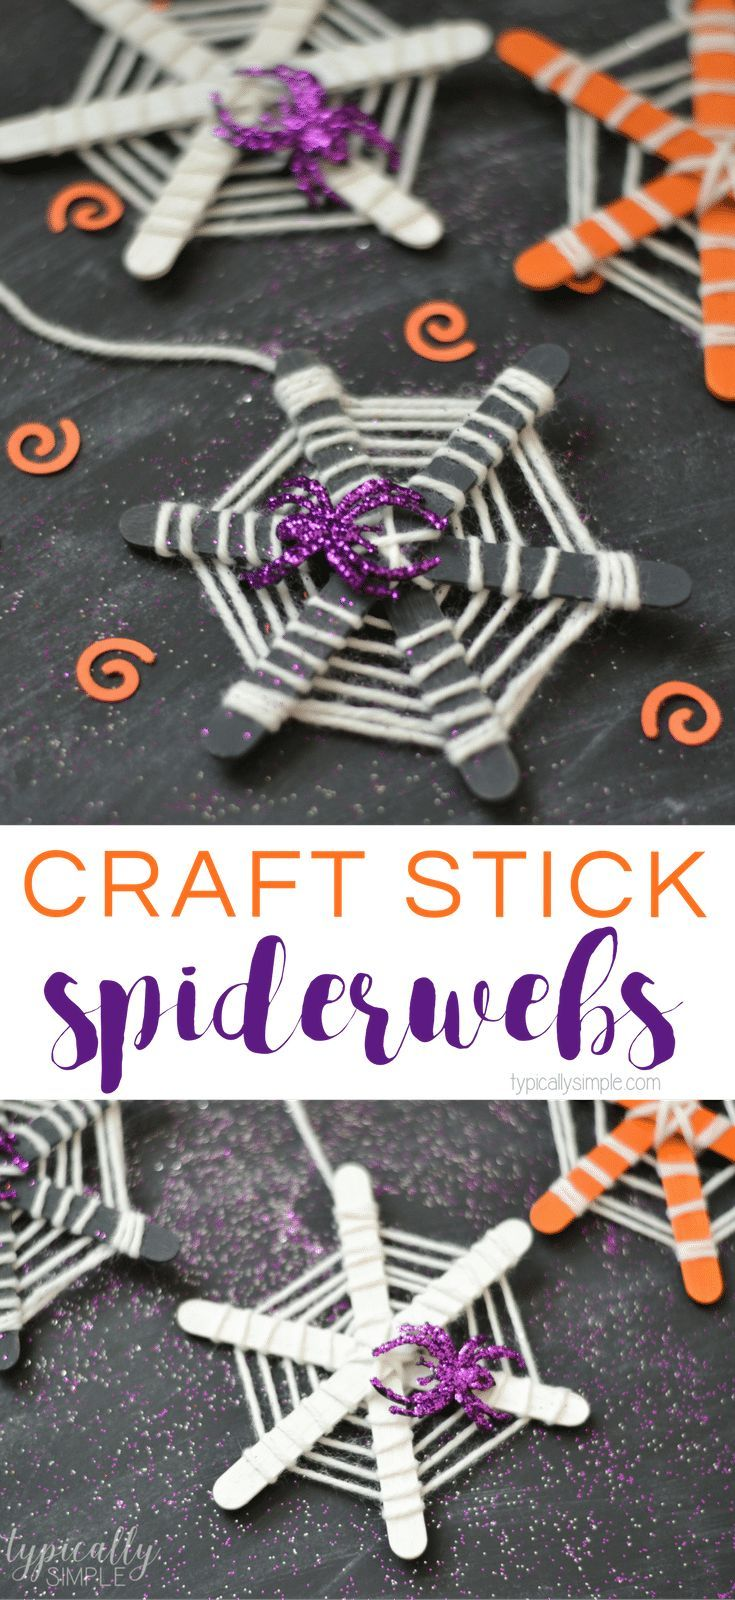 Make these super cute craft stick spiderwebs with the kids for Halloween! These make a great craft project for classroom parties or for a family fun night!